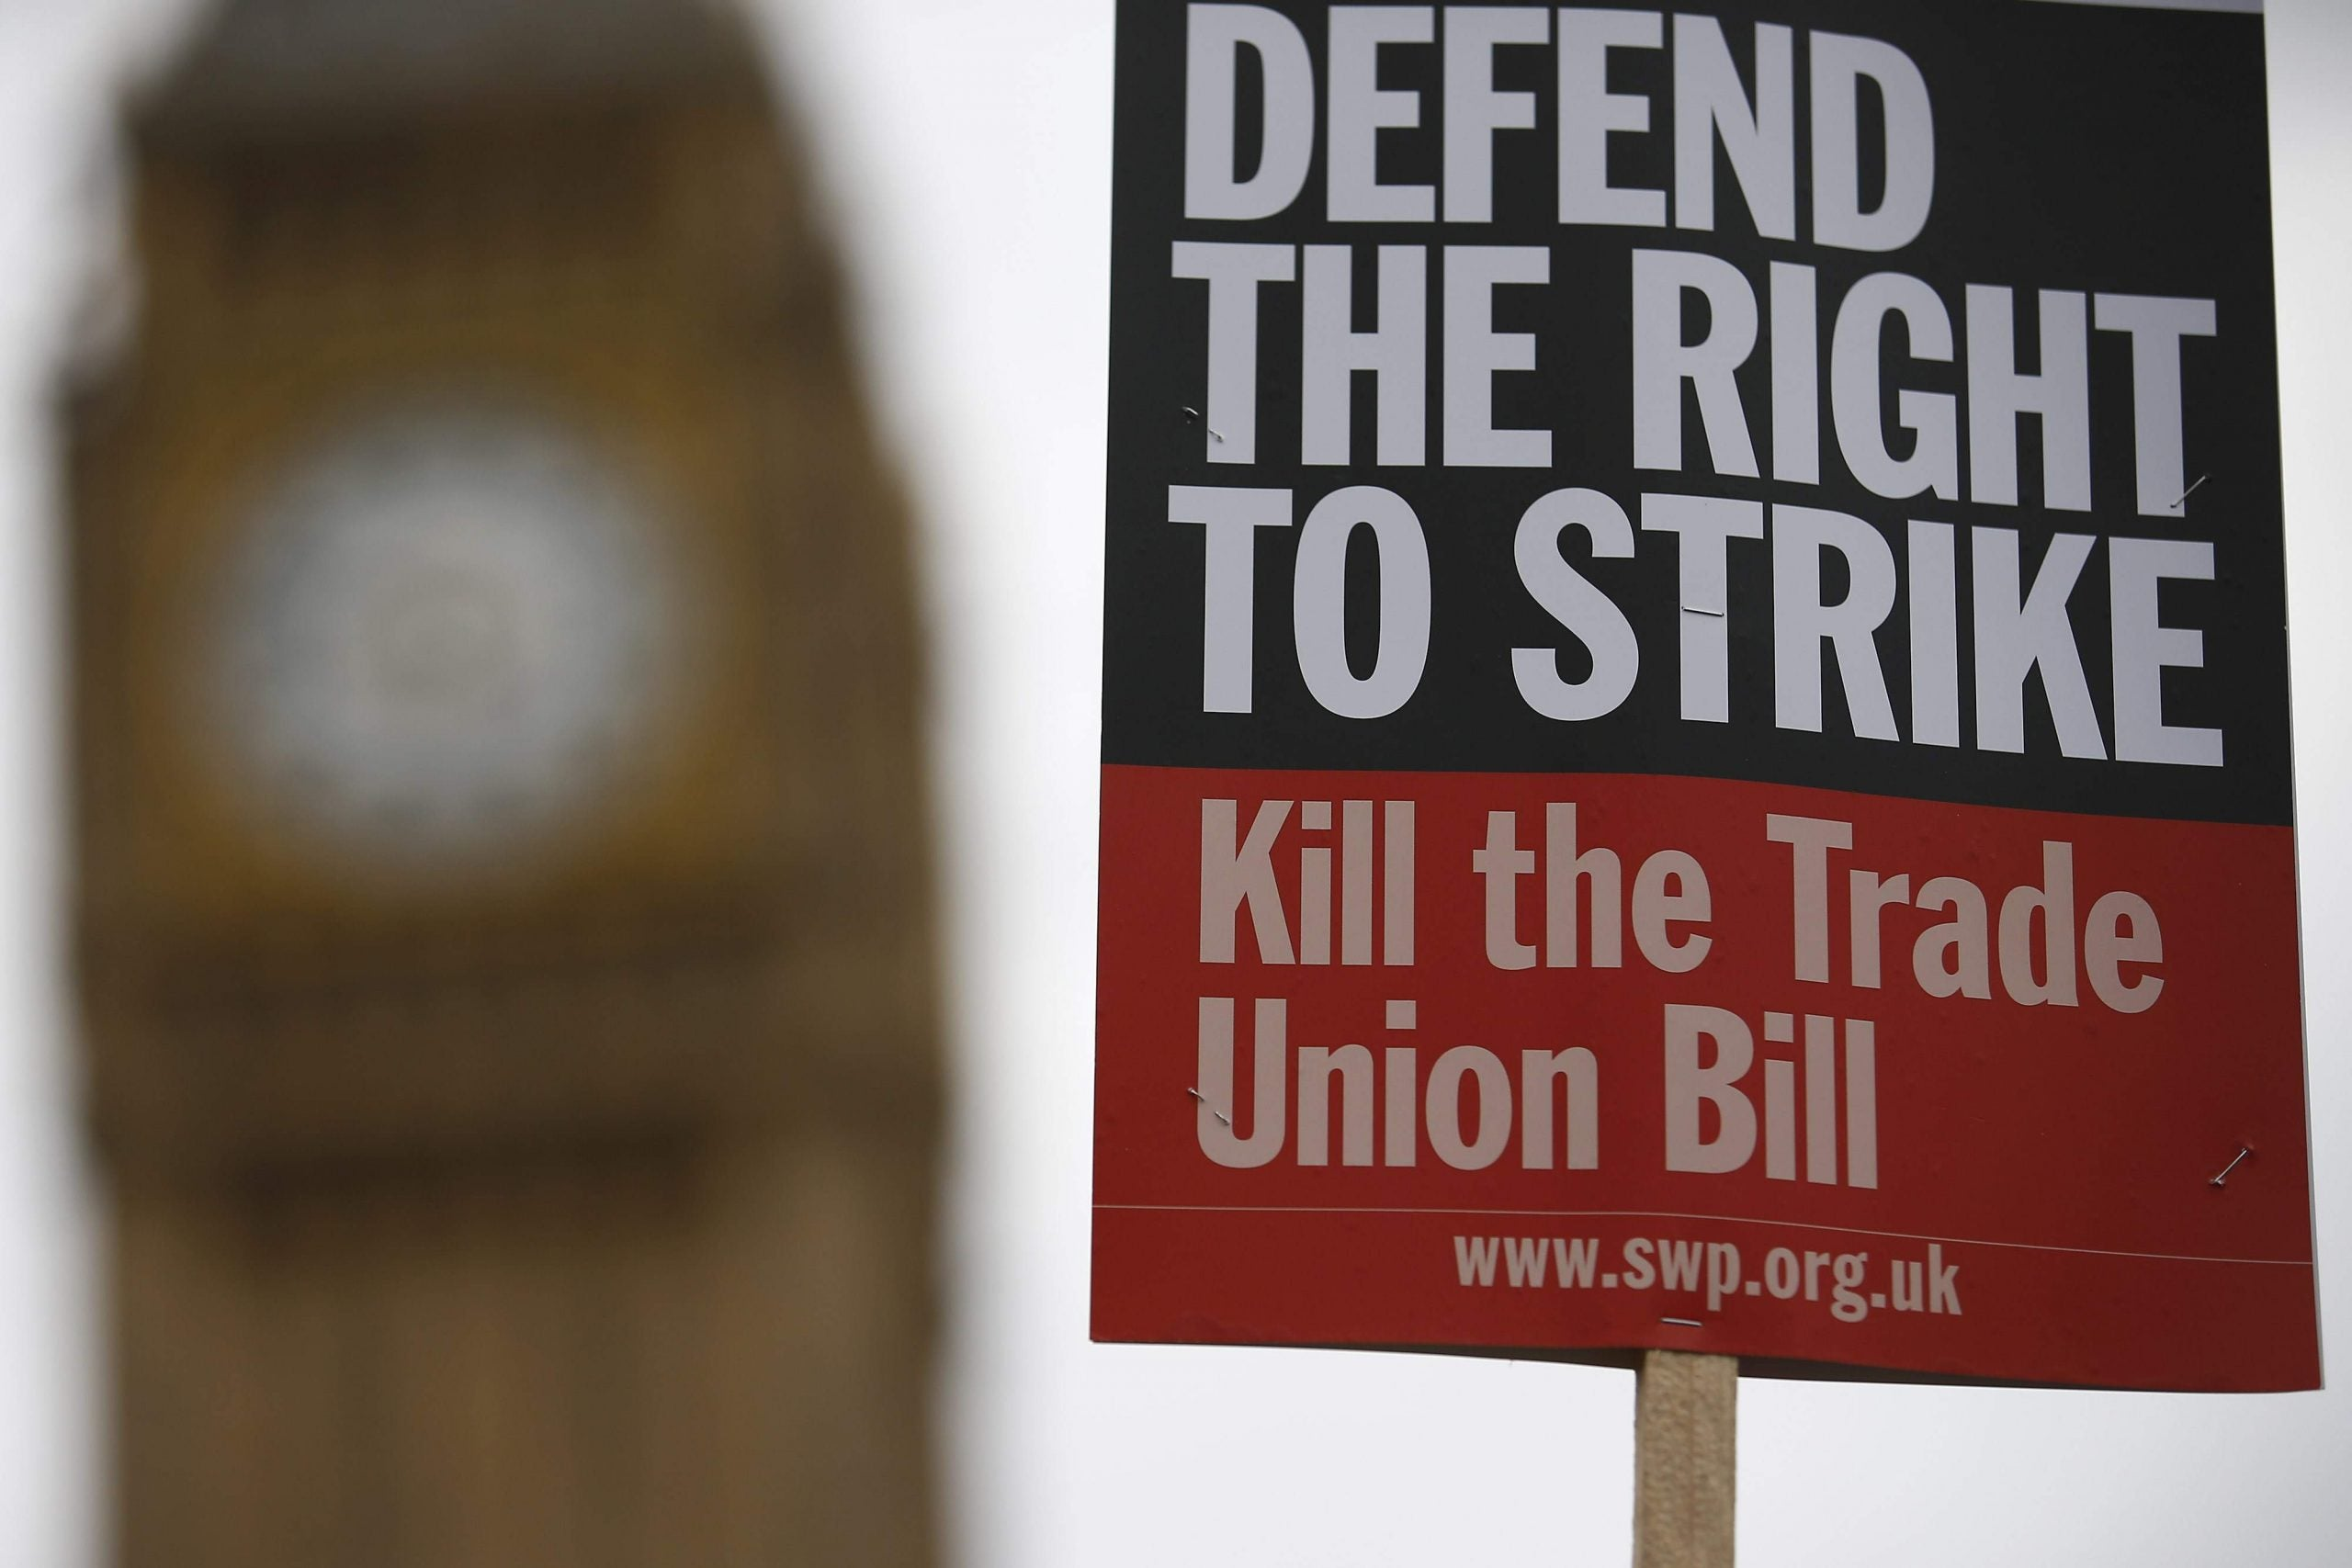 Without cross-party support, the Trade Union Bill looks like a Tory stitch-up